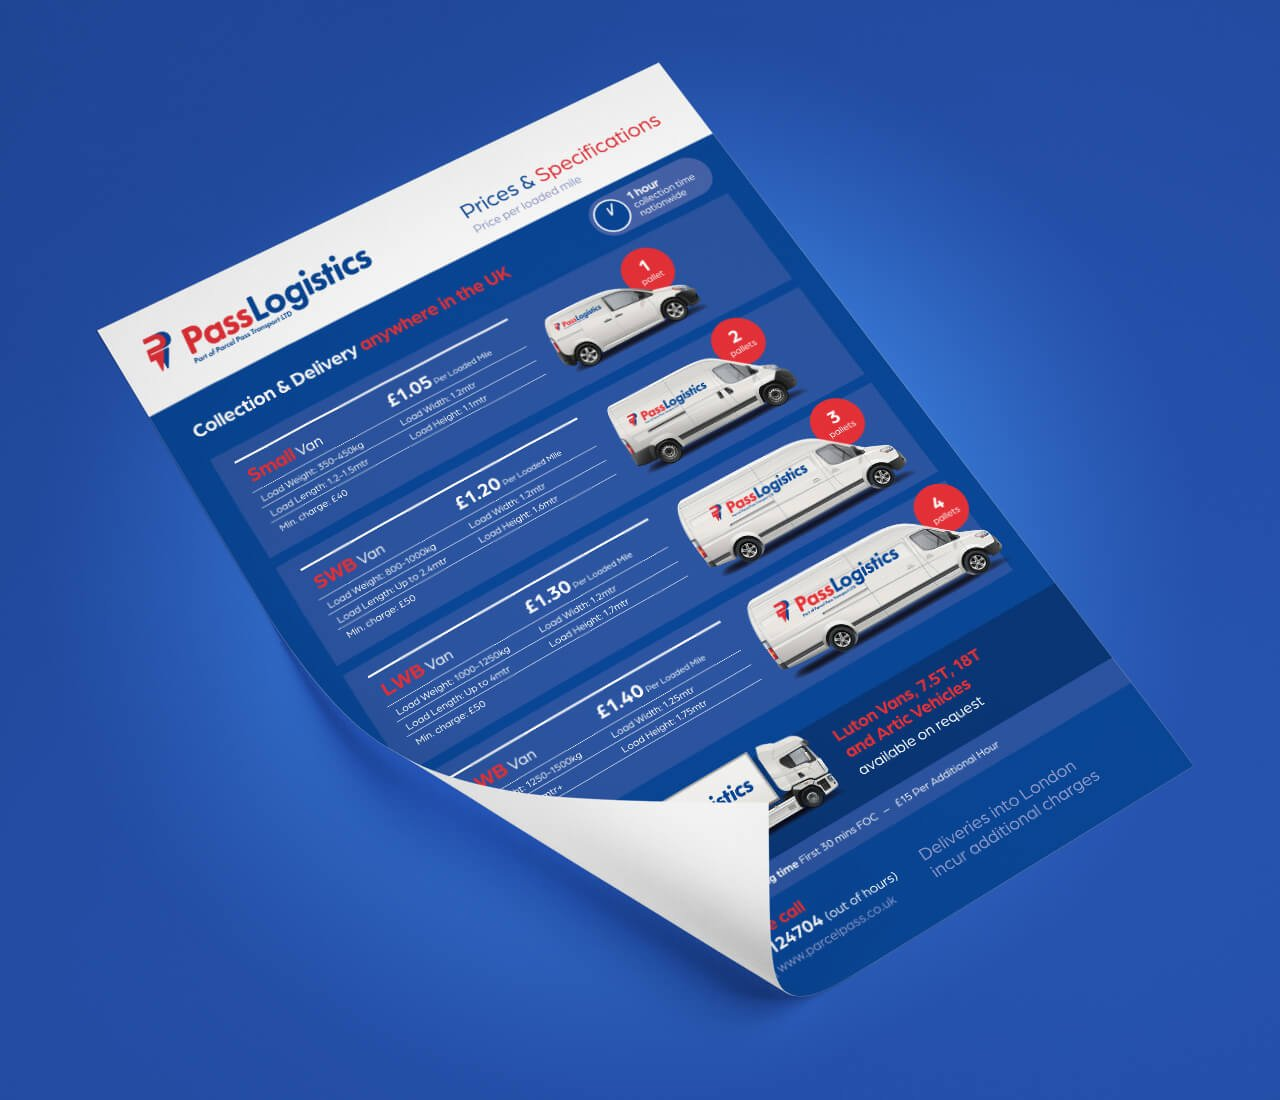 design for the pass logistics price list